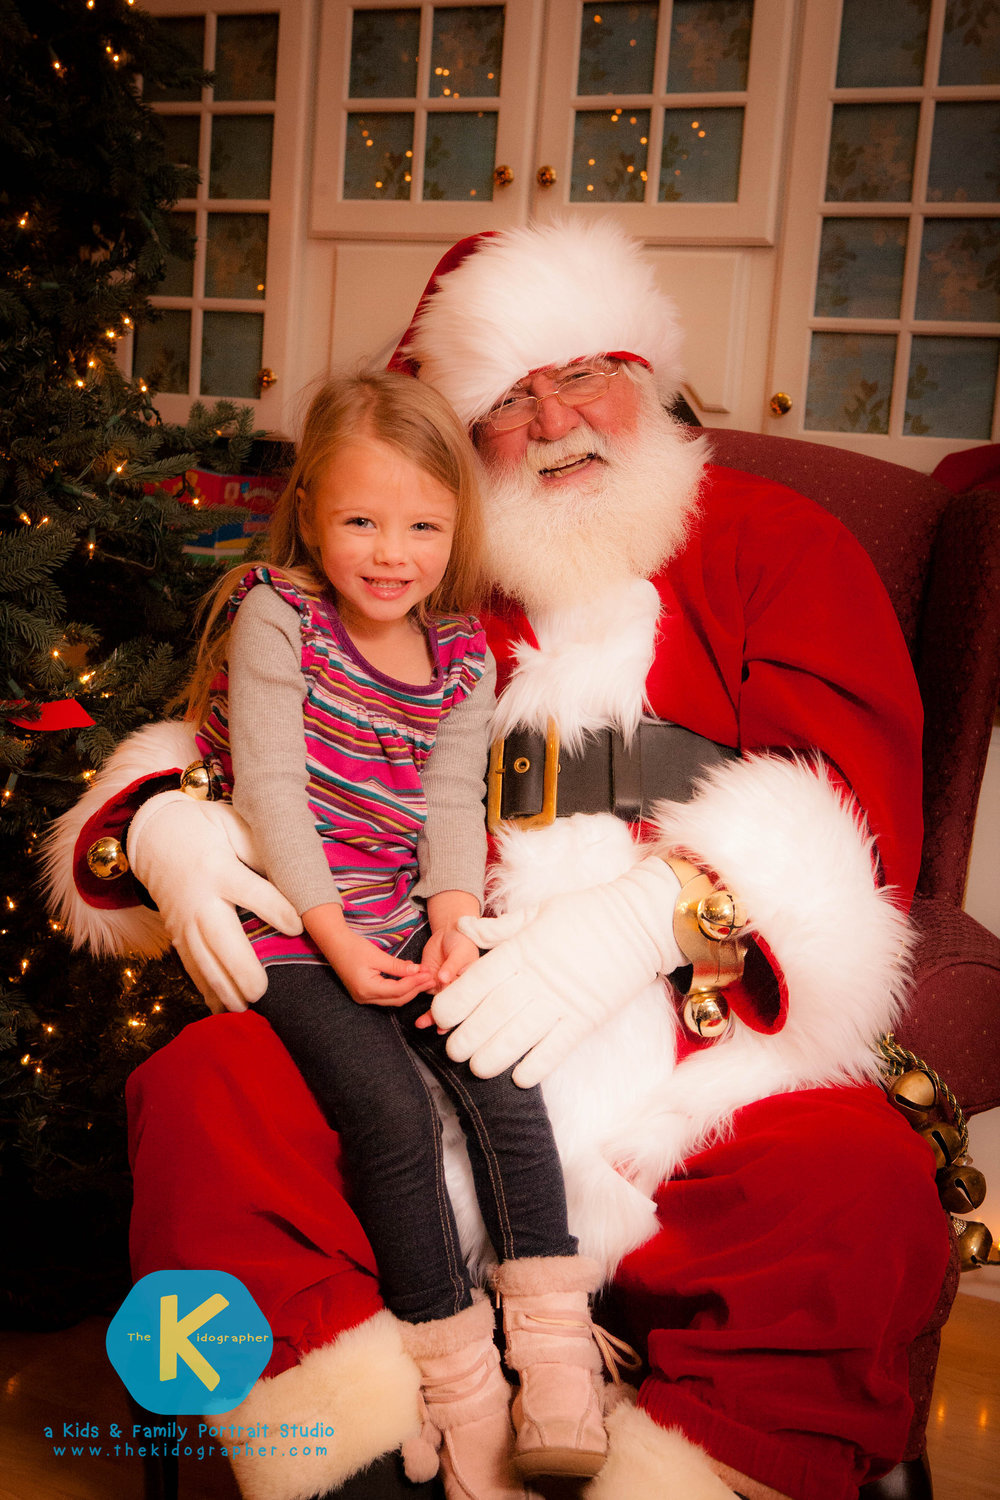 THE_KIDOGRAPHER_PHOTOS_WITH_SANTA-108.jpg